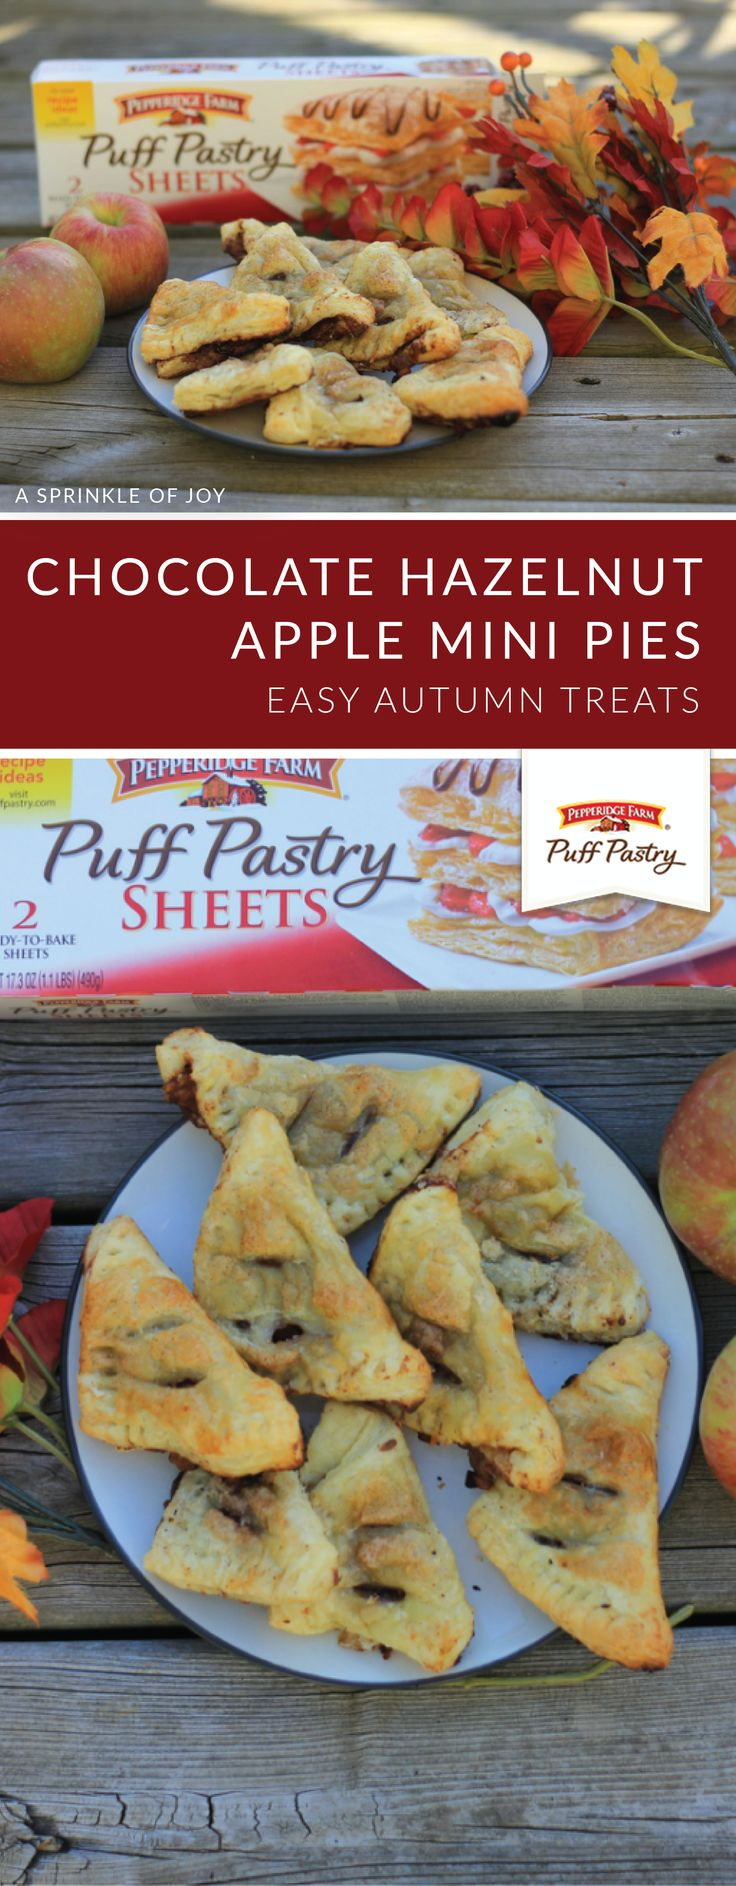 These Chocolate Hazelnut Apple Mini Pies from Danielle, of A Sprinkle of Joy, are an easy treat that you can serve at all of your fall parties. Start by filling Pepperidge Farm® Puff Pastry Sheets with chocolate hazelnut spread. Then, add in the sweet taste of fresh apples, cinnamon, allspice, nutmeg, and brown sugar to complete this indulgent dessert recipe.